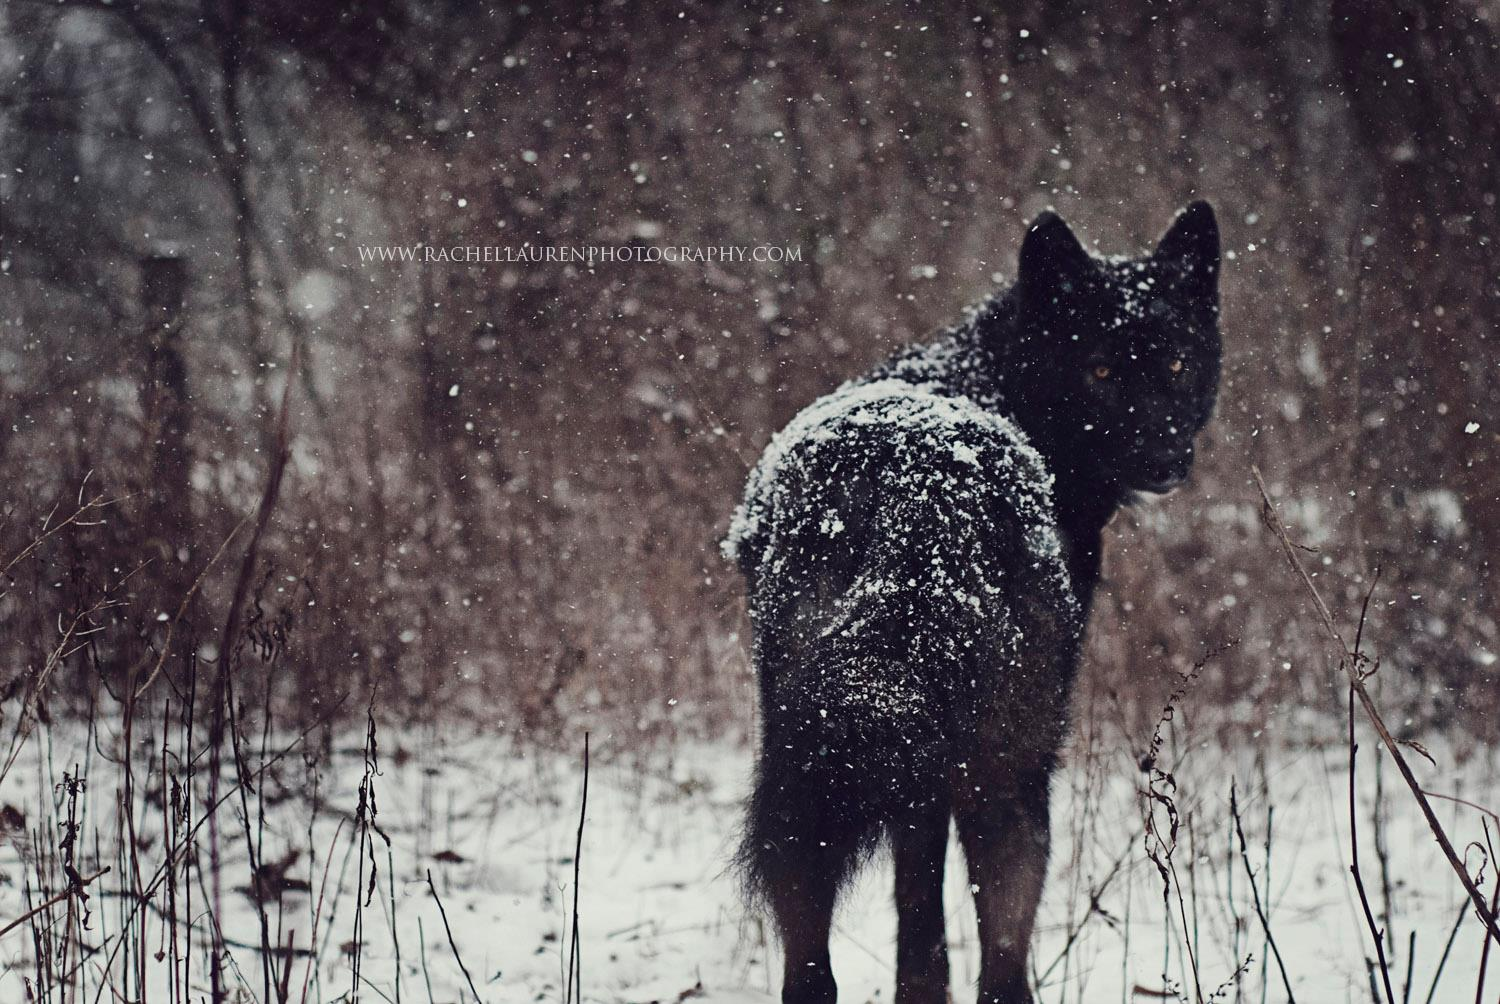 Lucian – rachel lauren photography- chien loup